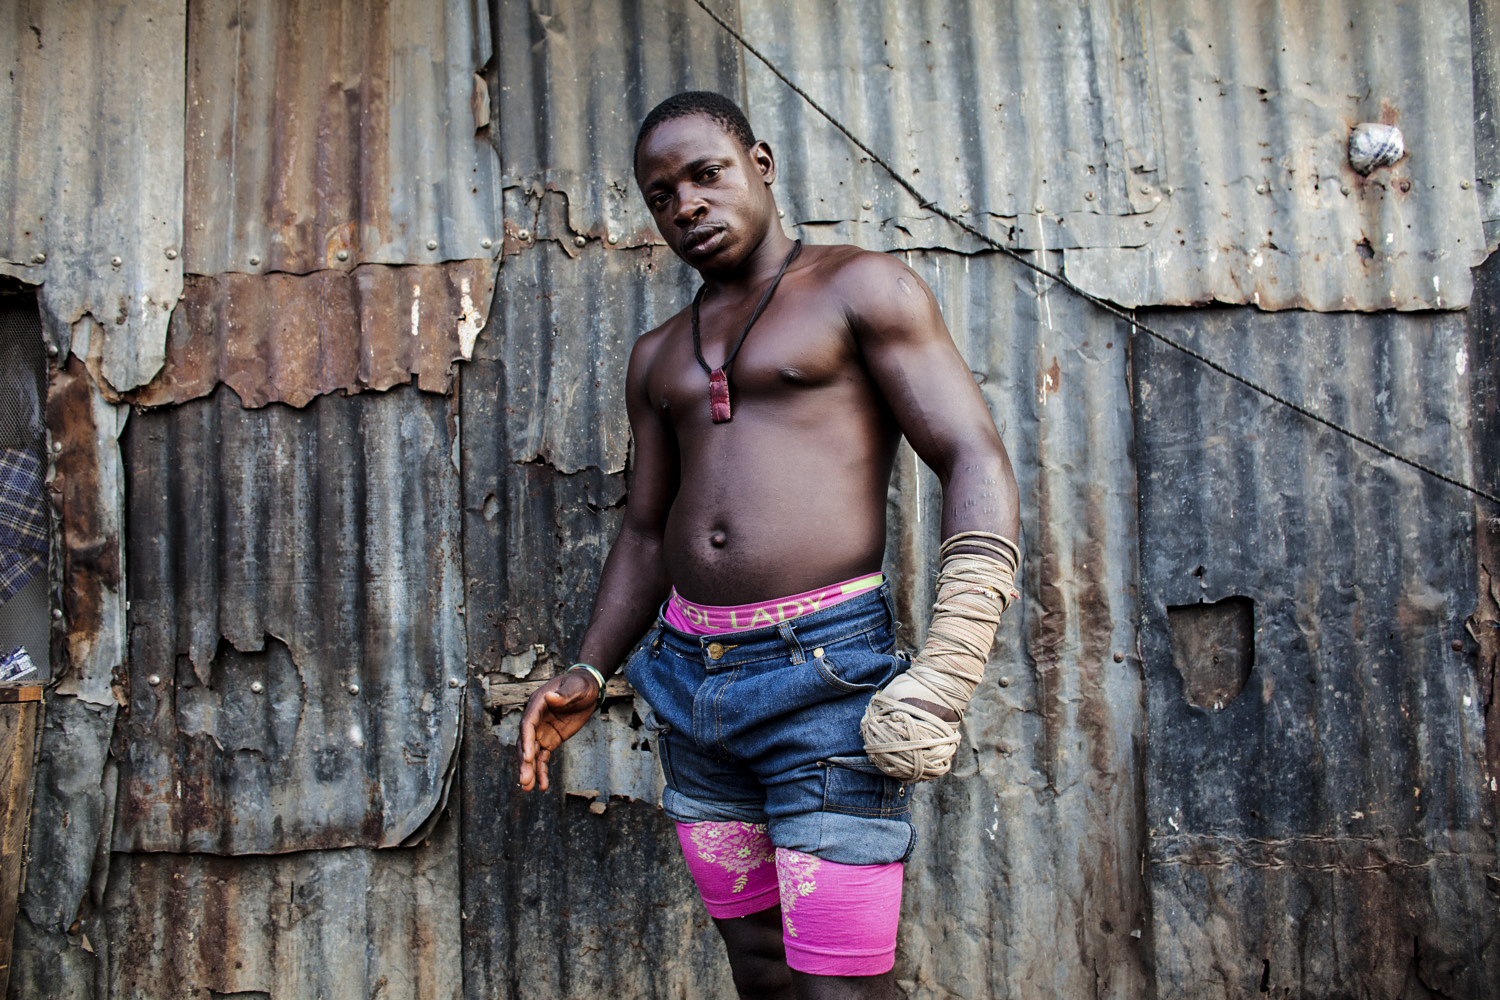 1. Hassan Abu Trassan, 22, is from Niamey in Niger. He began boxing to seek fame and fortune. / 2. Dambe boxer 'Shago' Rikishi, 25, poses for a portrait in Lagos.